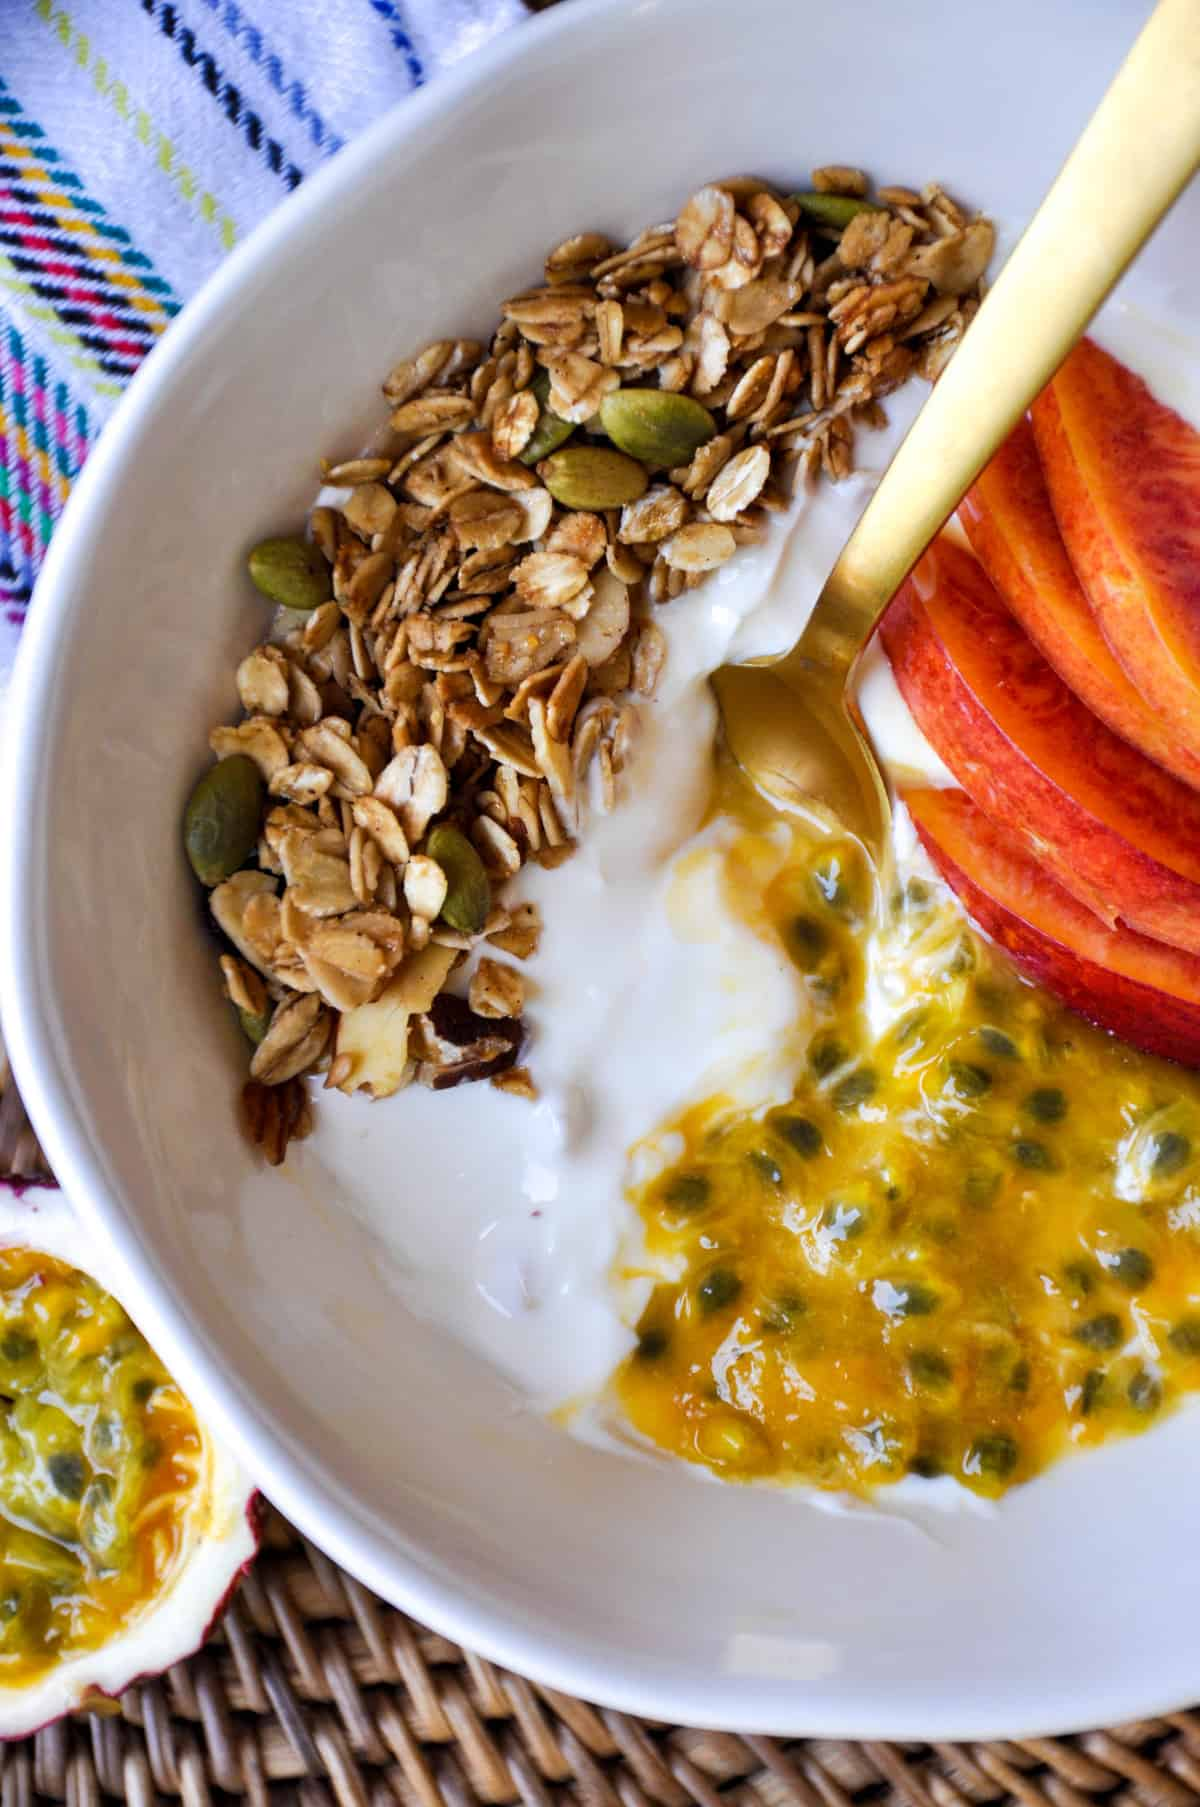 Passion Fruit & Granola Yogurt Bowl